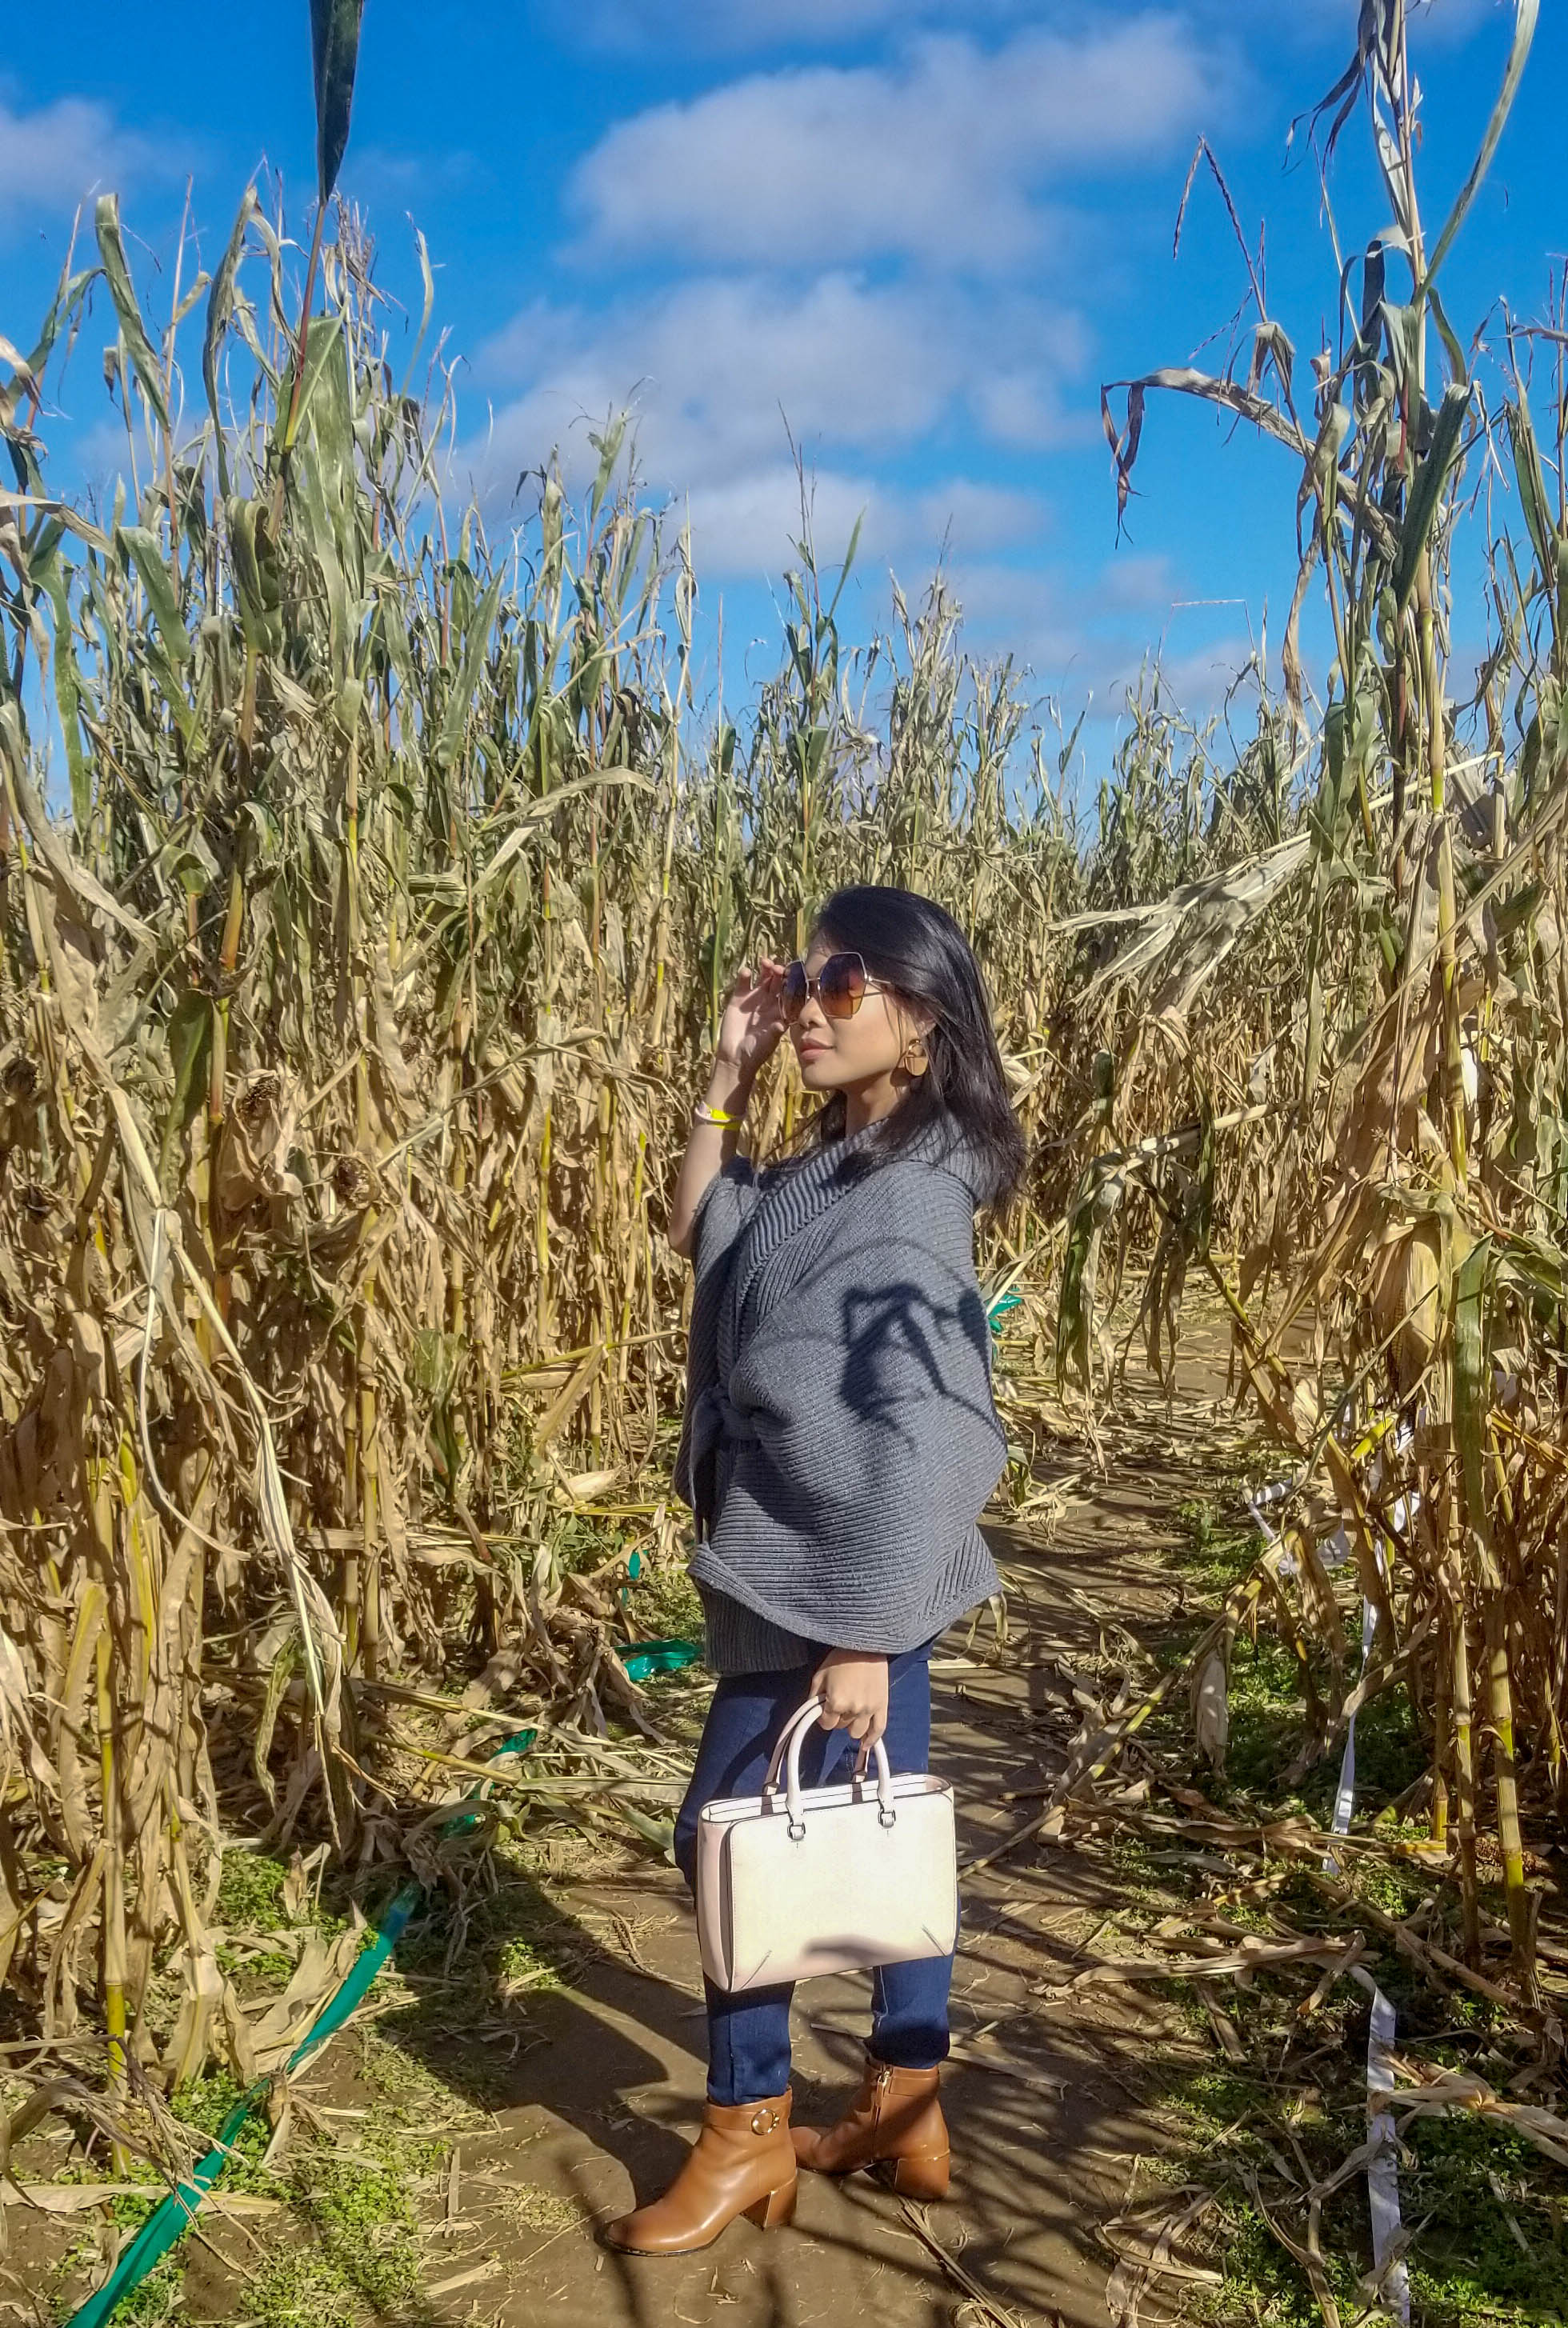 At the corn maze with dead corns